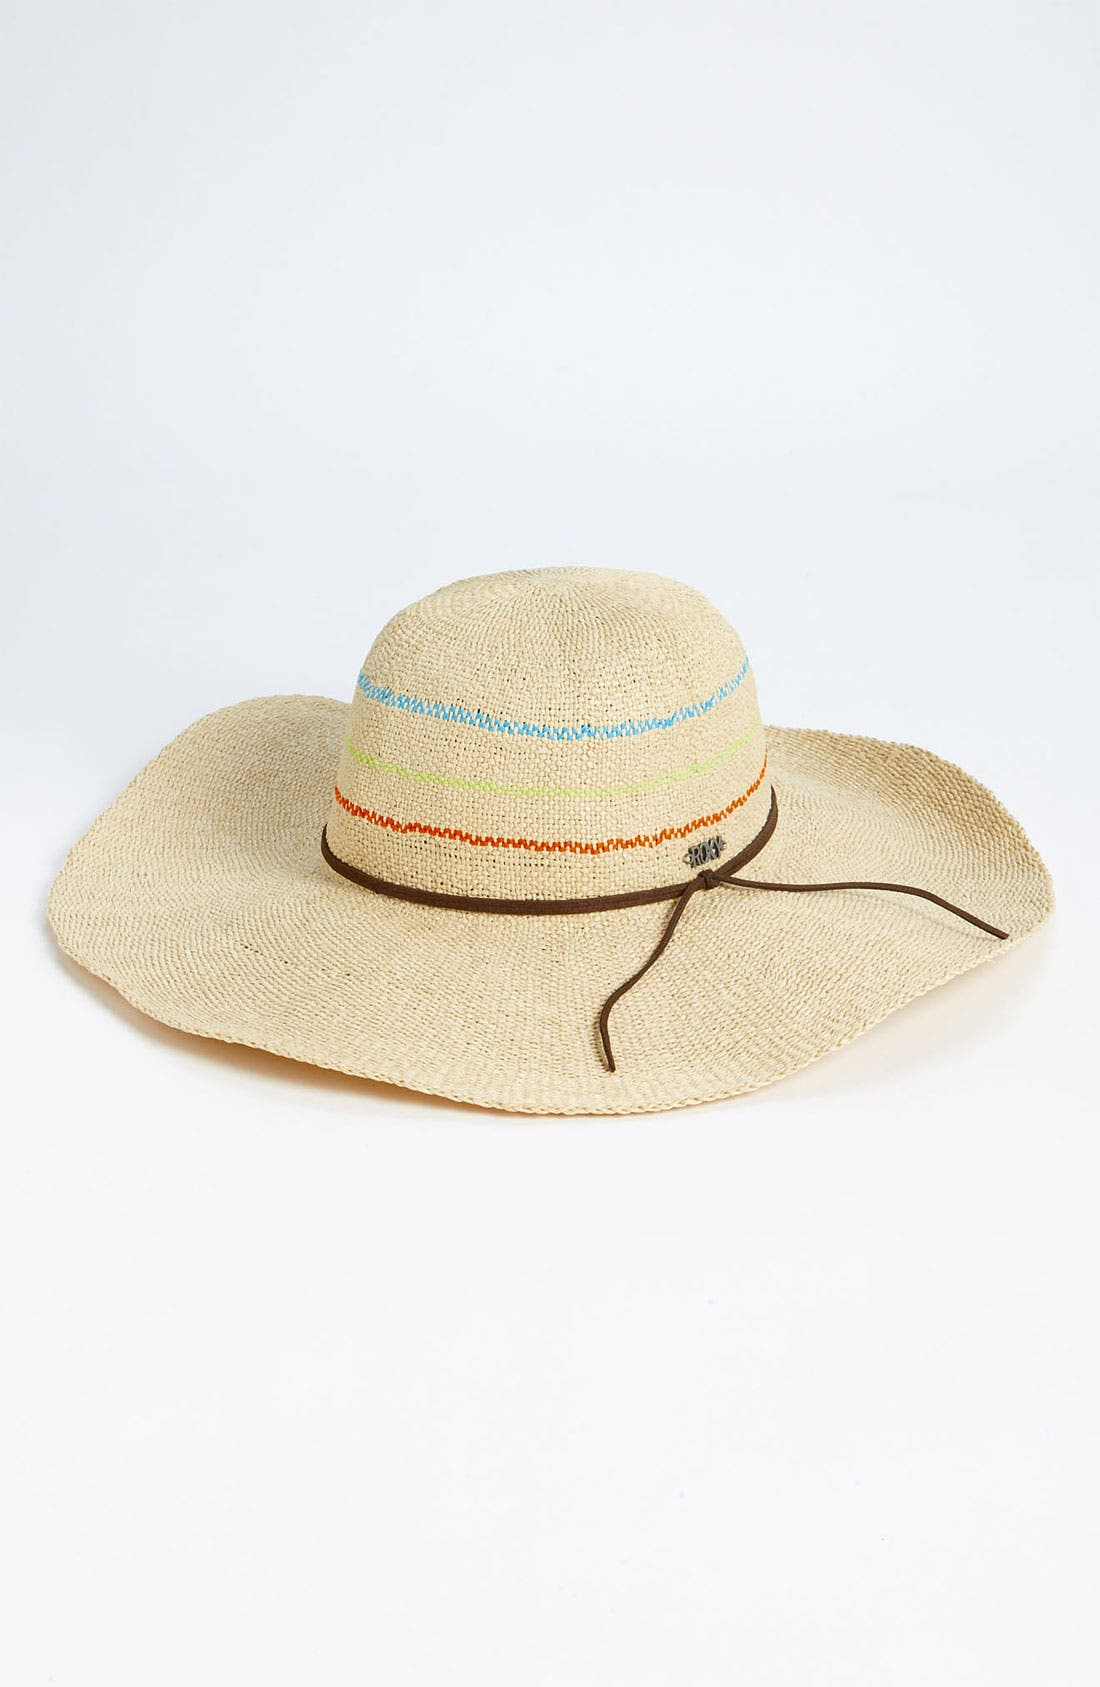 Alternate Image 1 Selected - 'By the Sea' Hat